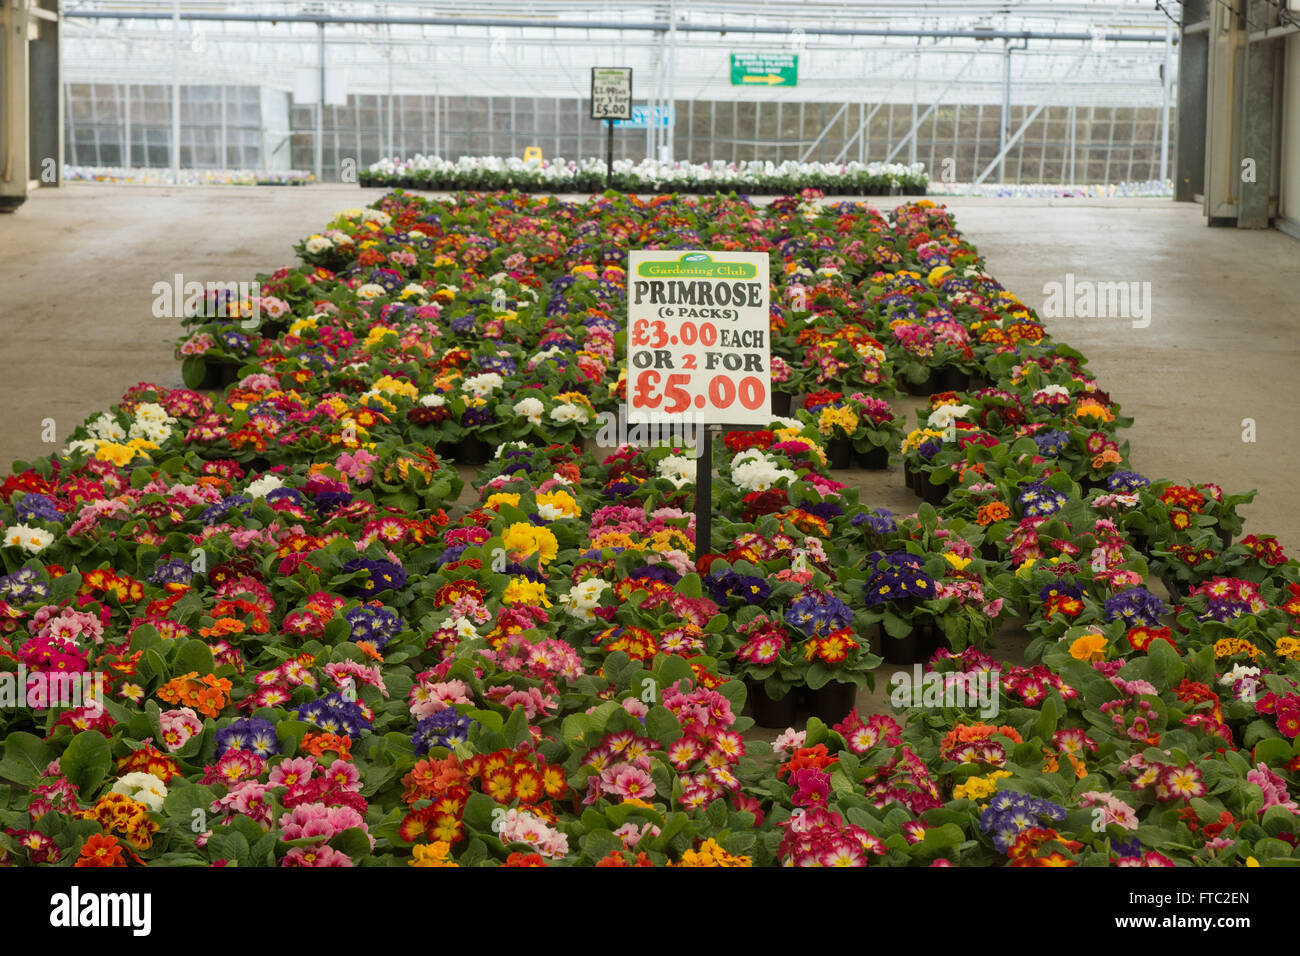 flower nursery,  flower centre, garden center greenhouse - Stock Image